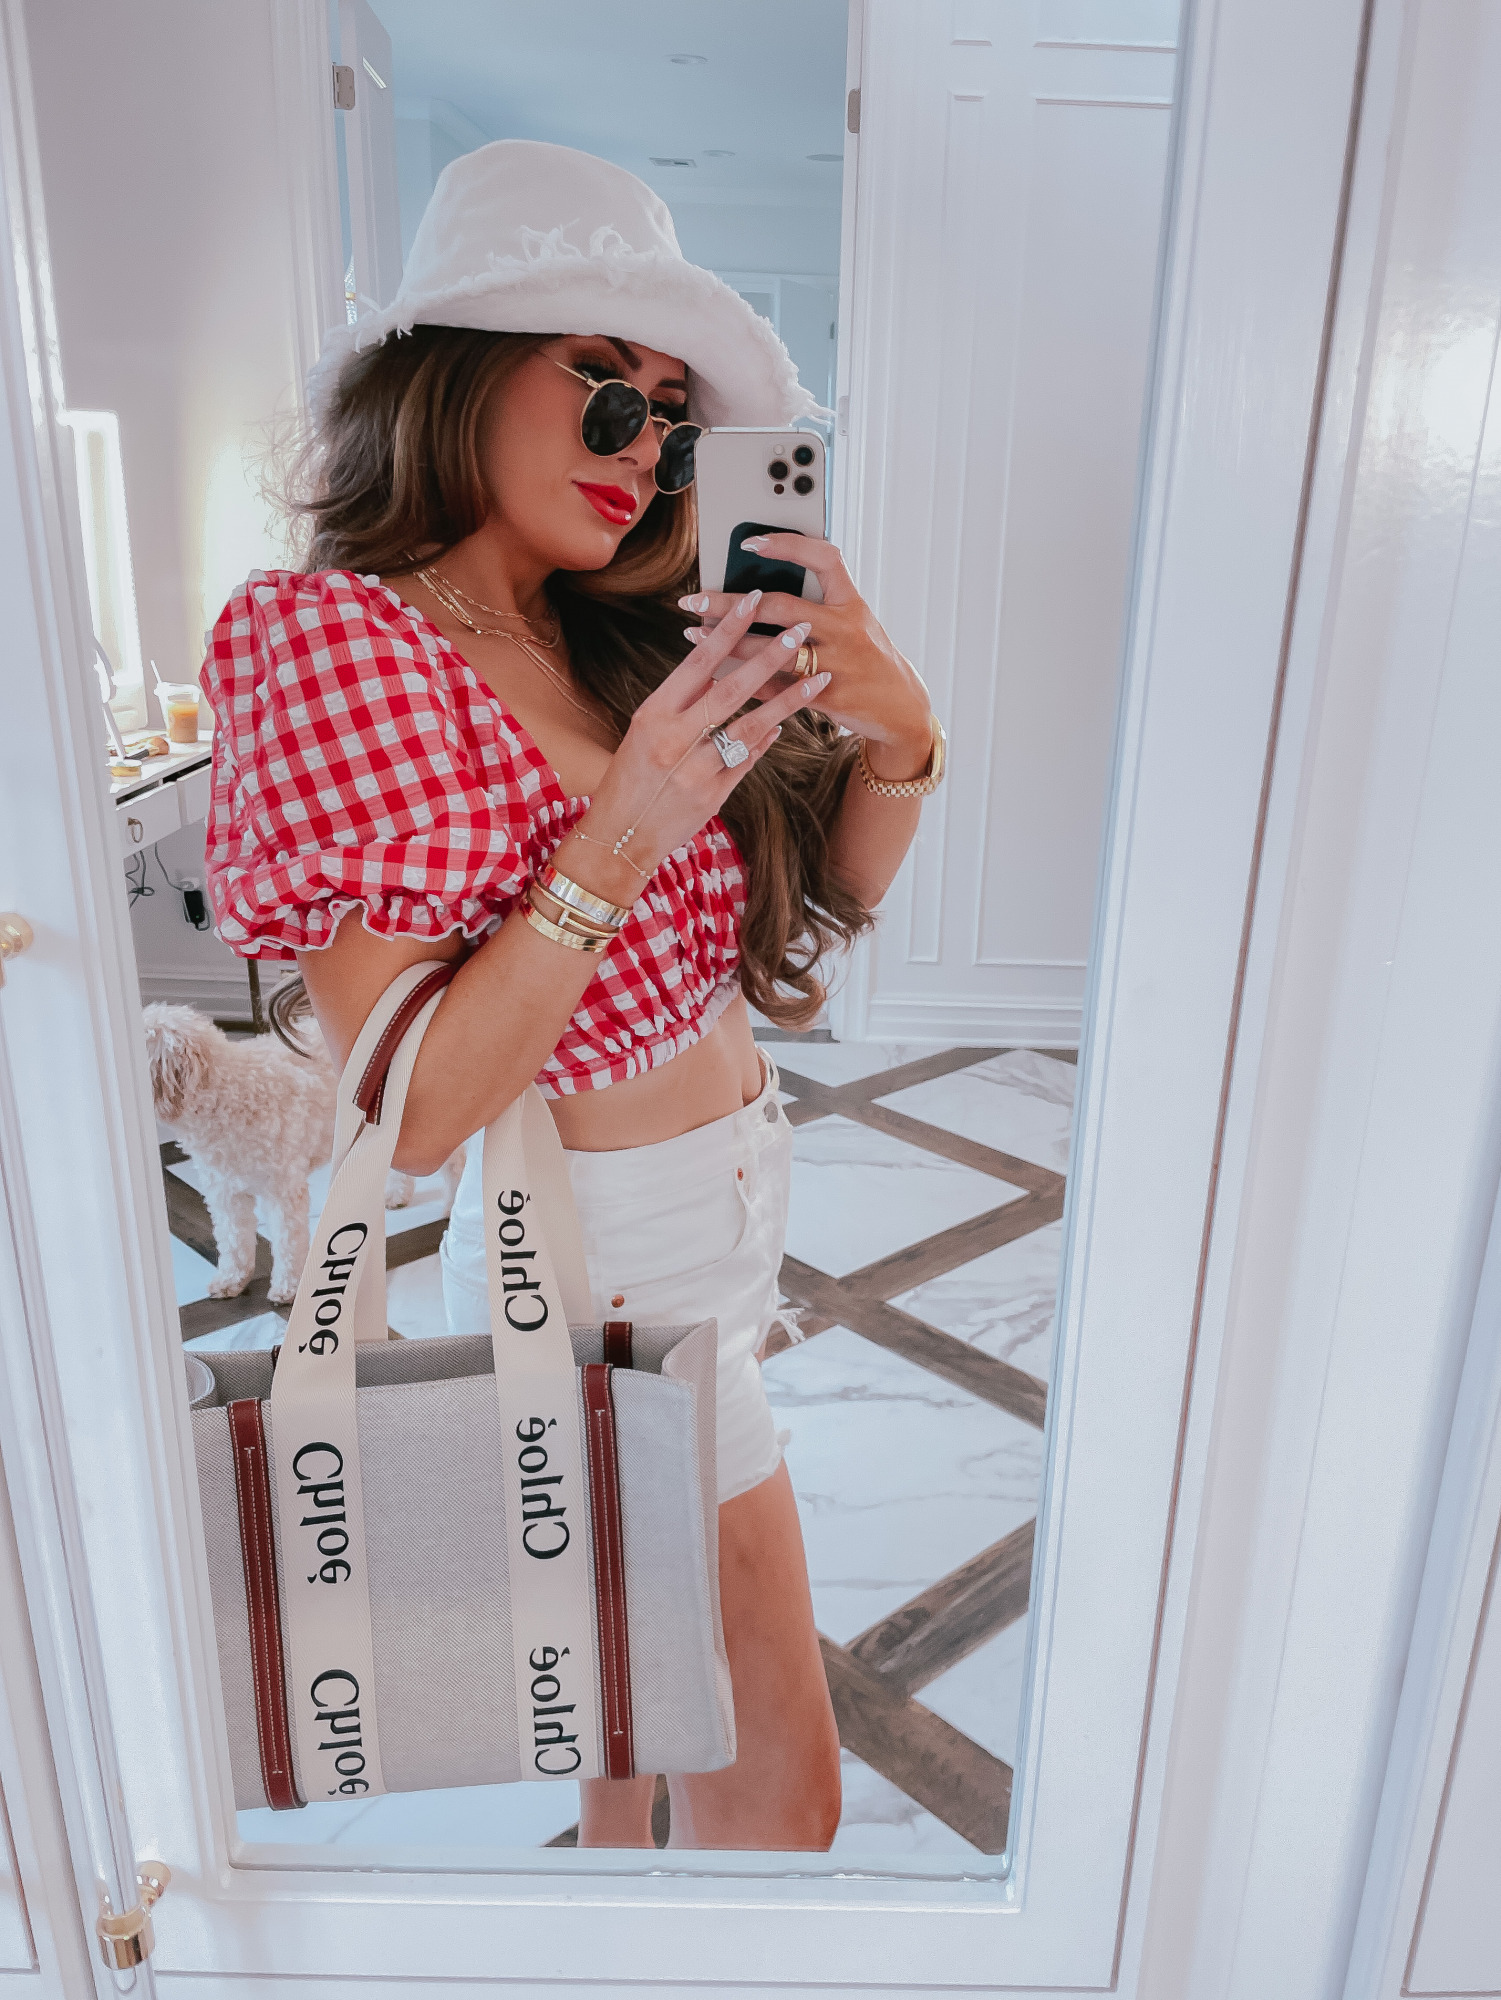 july 4 outfit inspiration 2021, pinterest july 4 outfit, bucket hat, gucci red lipstick, chloe tote bag, Emily gemma1 | June Instagram Recap by popular US fashion blog, The Sweetest Thing: image of Emily Gemma wearing a a white bucket hat, red and white gingham top, white shorts, sunglasses and holding a Chloe bag.